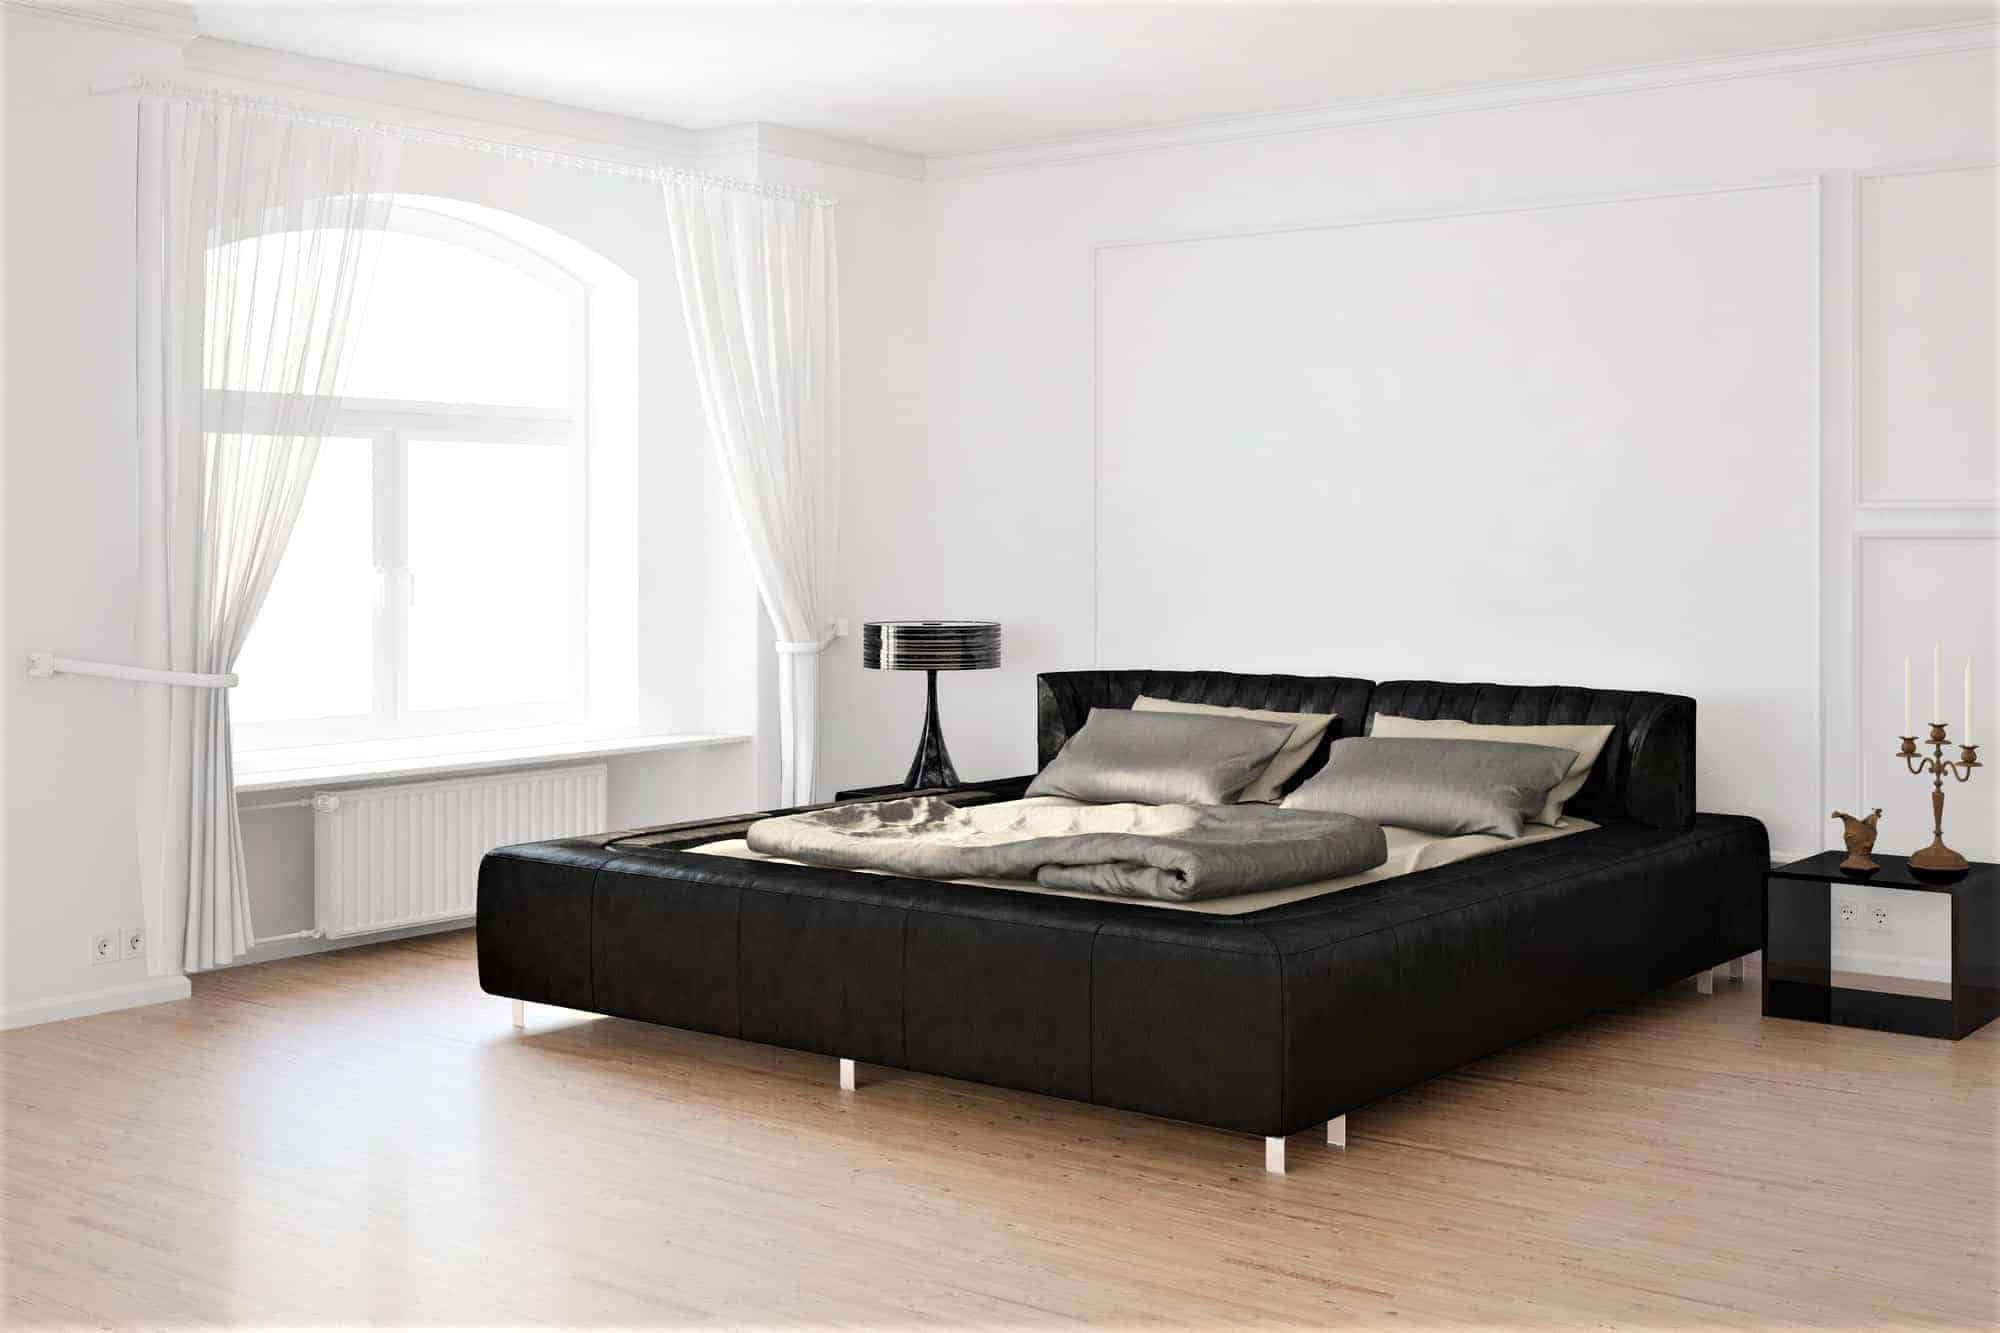 Black Leather Bed Frame - Liberty Leather Goods